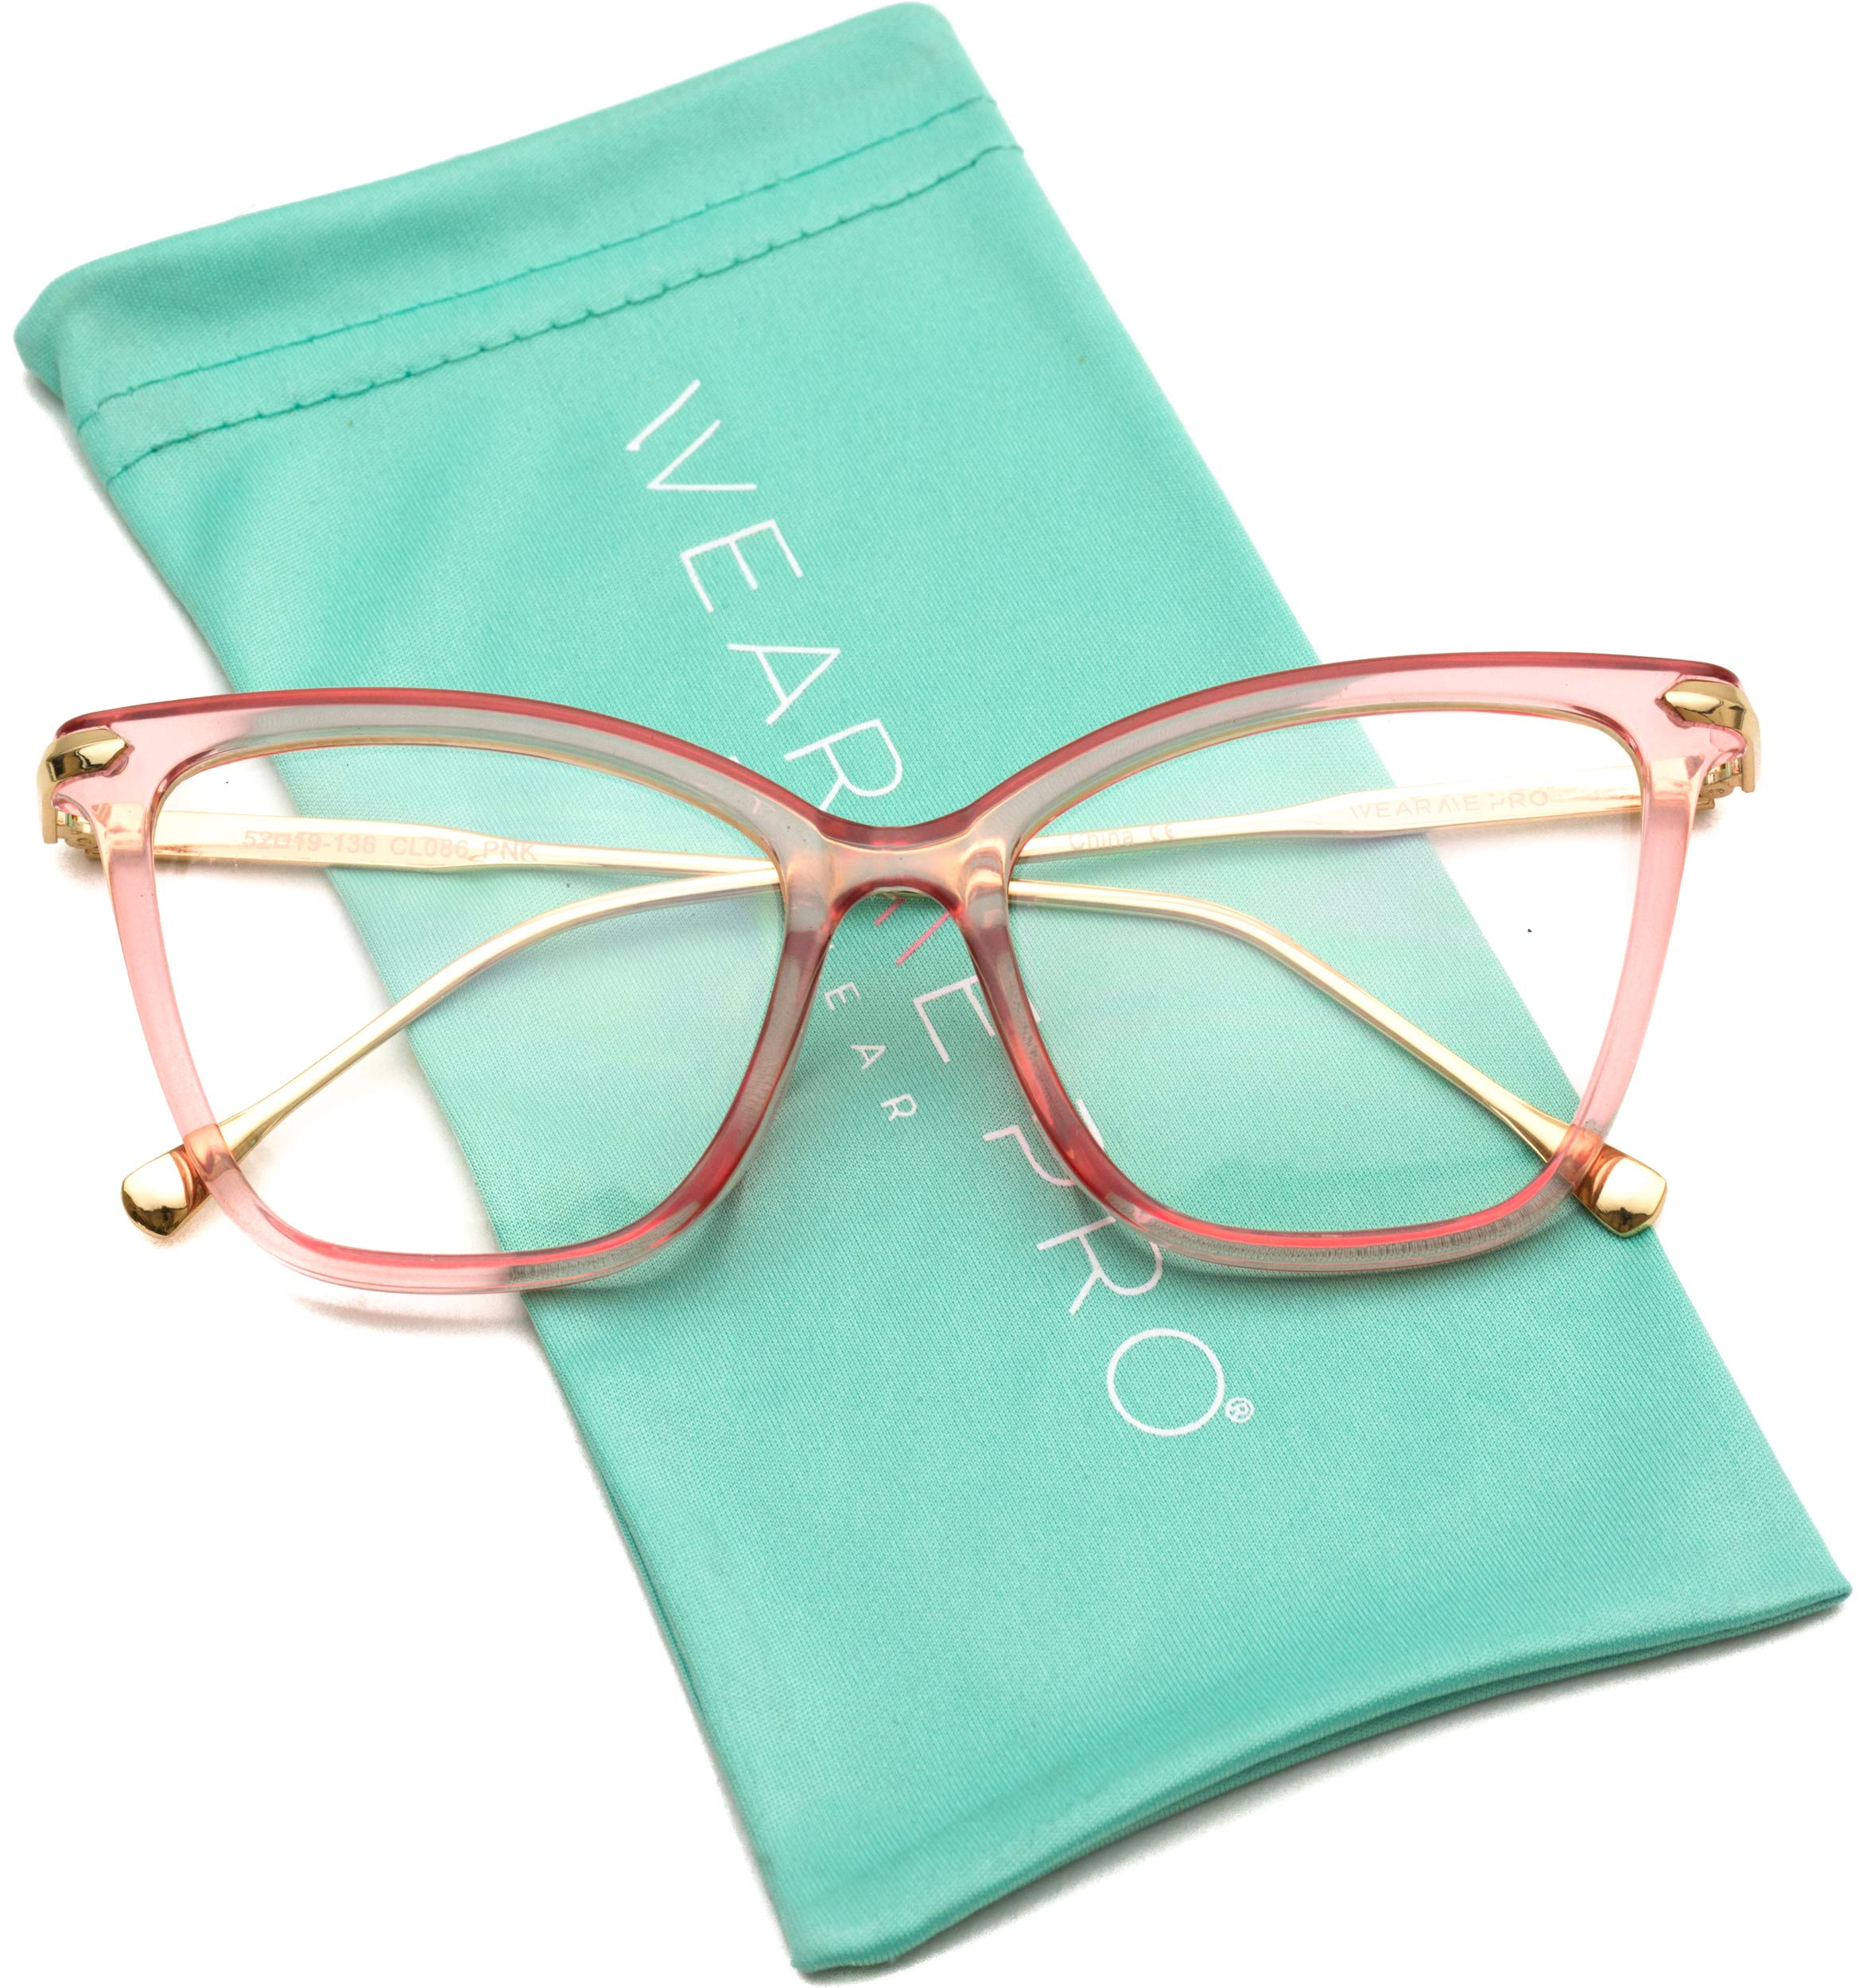 34ad7a52b Galleon - WearMe Pro - New Elegant Oversized Clear Cat Eye Non-Prescription  Glasses (Pink Frame, 52)